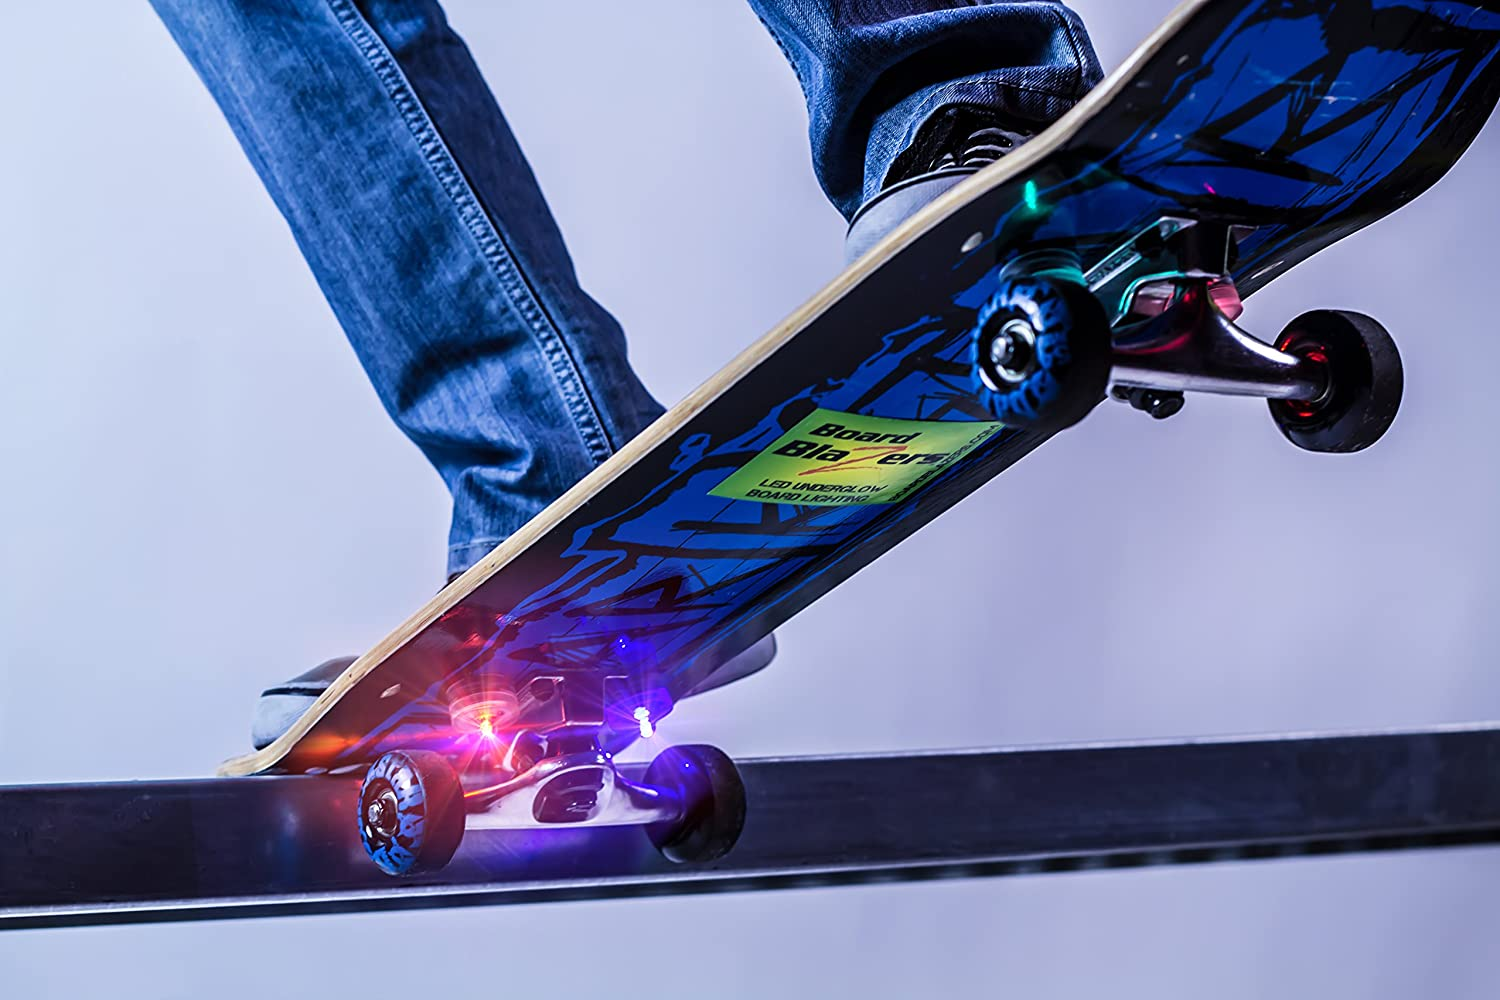 5 Skateboards With The Coolest Prints To Make Your Skateboard ...